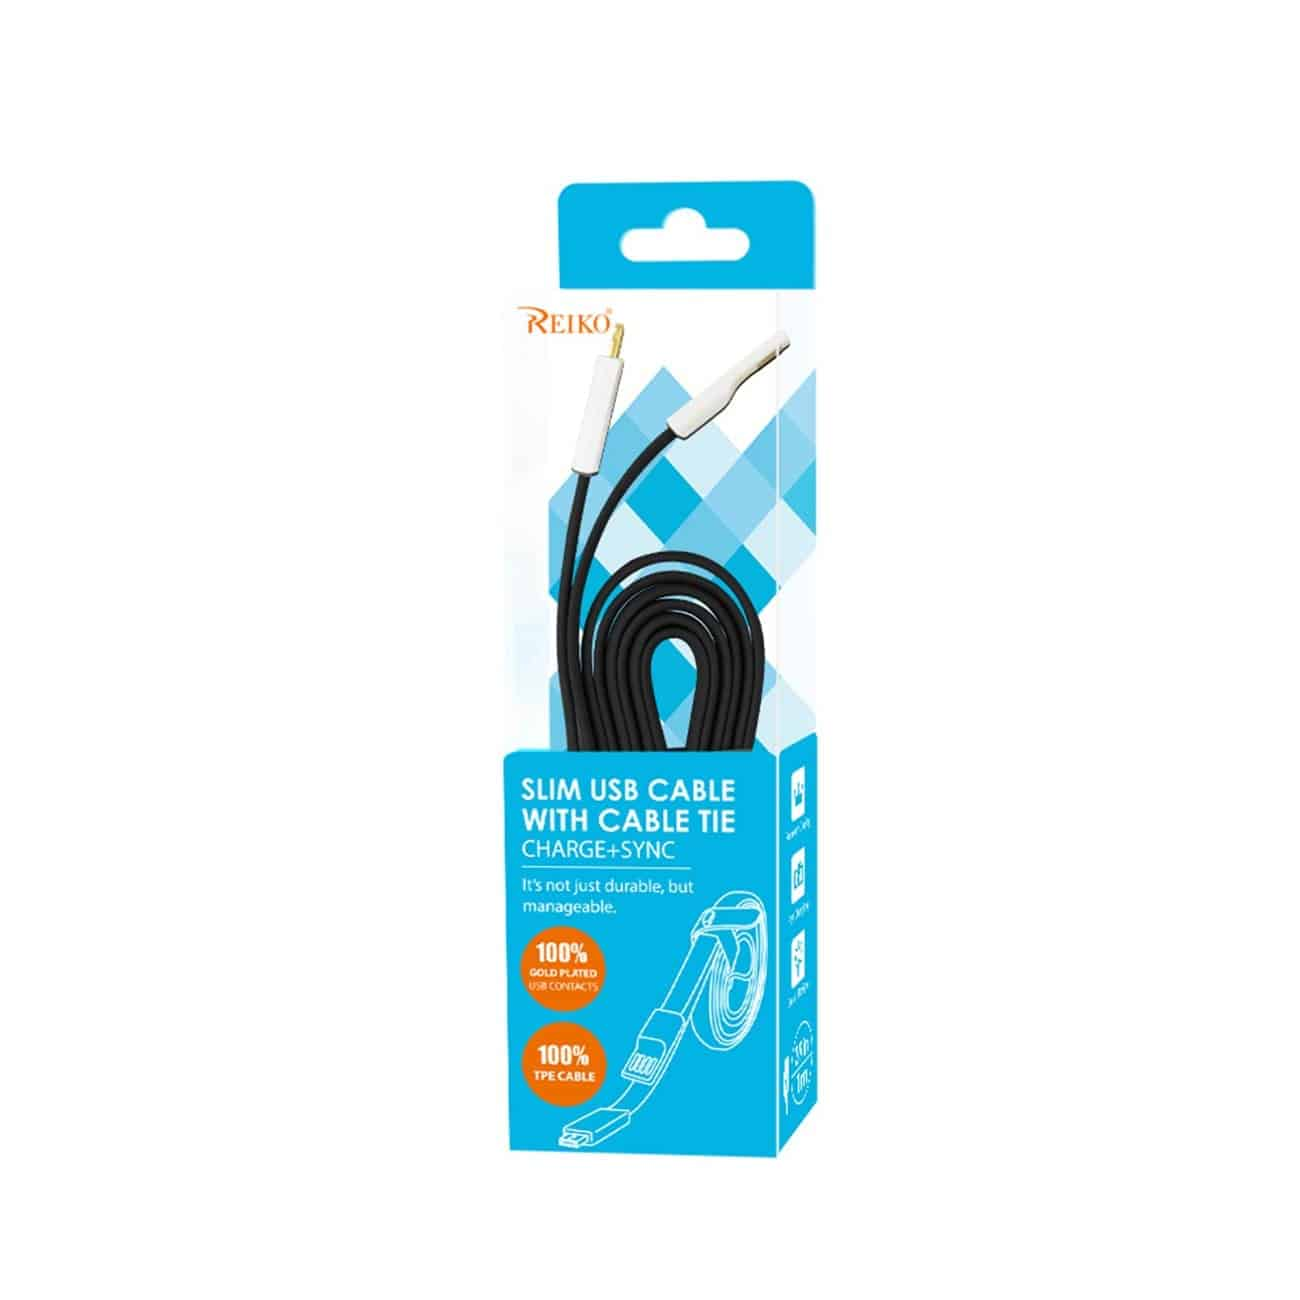 FLAT MICRO USB GOLD PLATED DATA CABLE 3.9FT WITH CABLE TIE IN BLACK